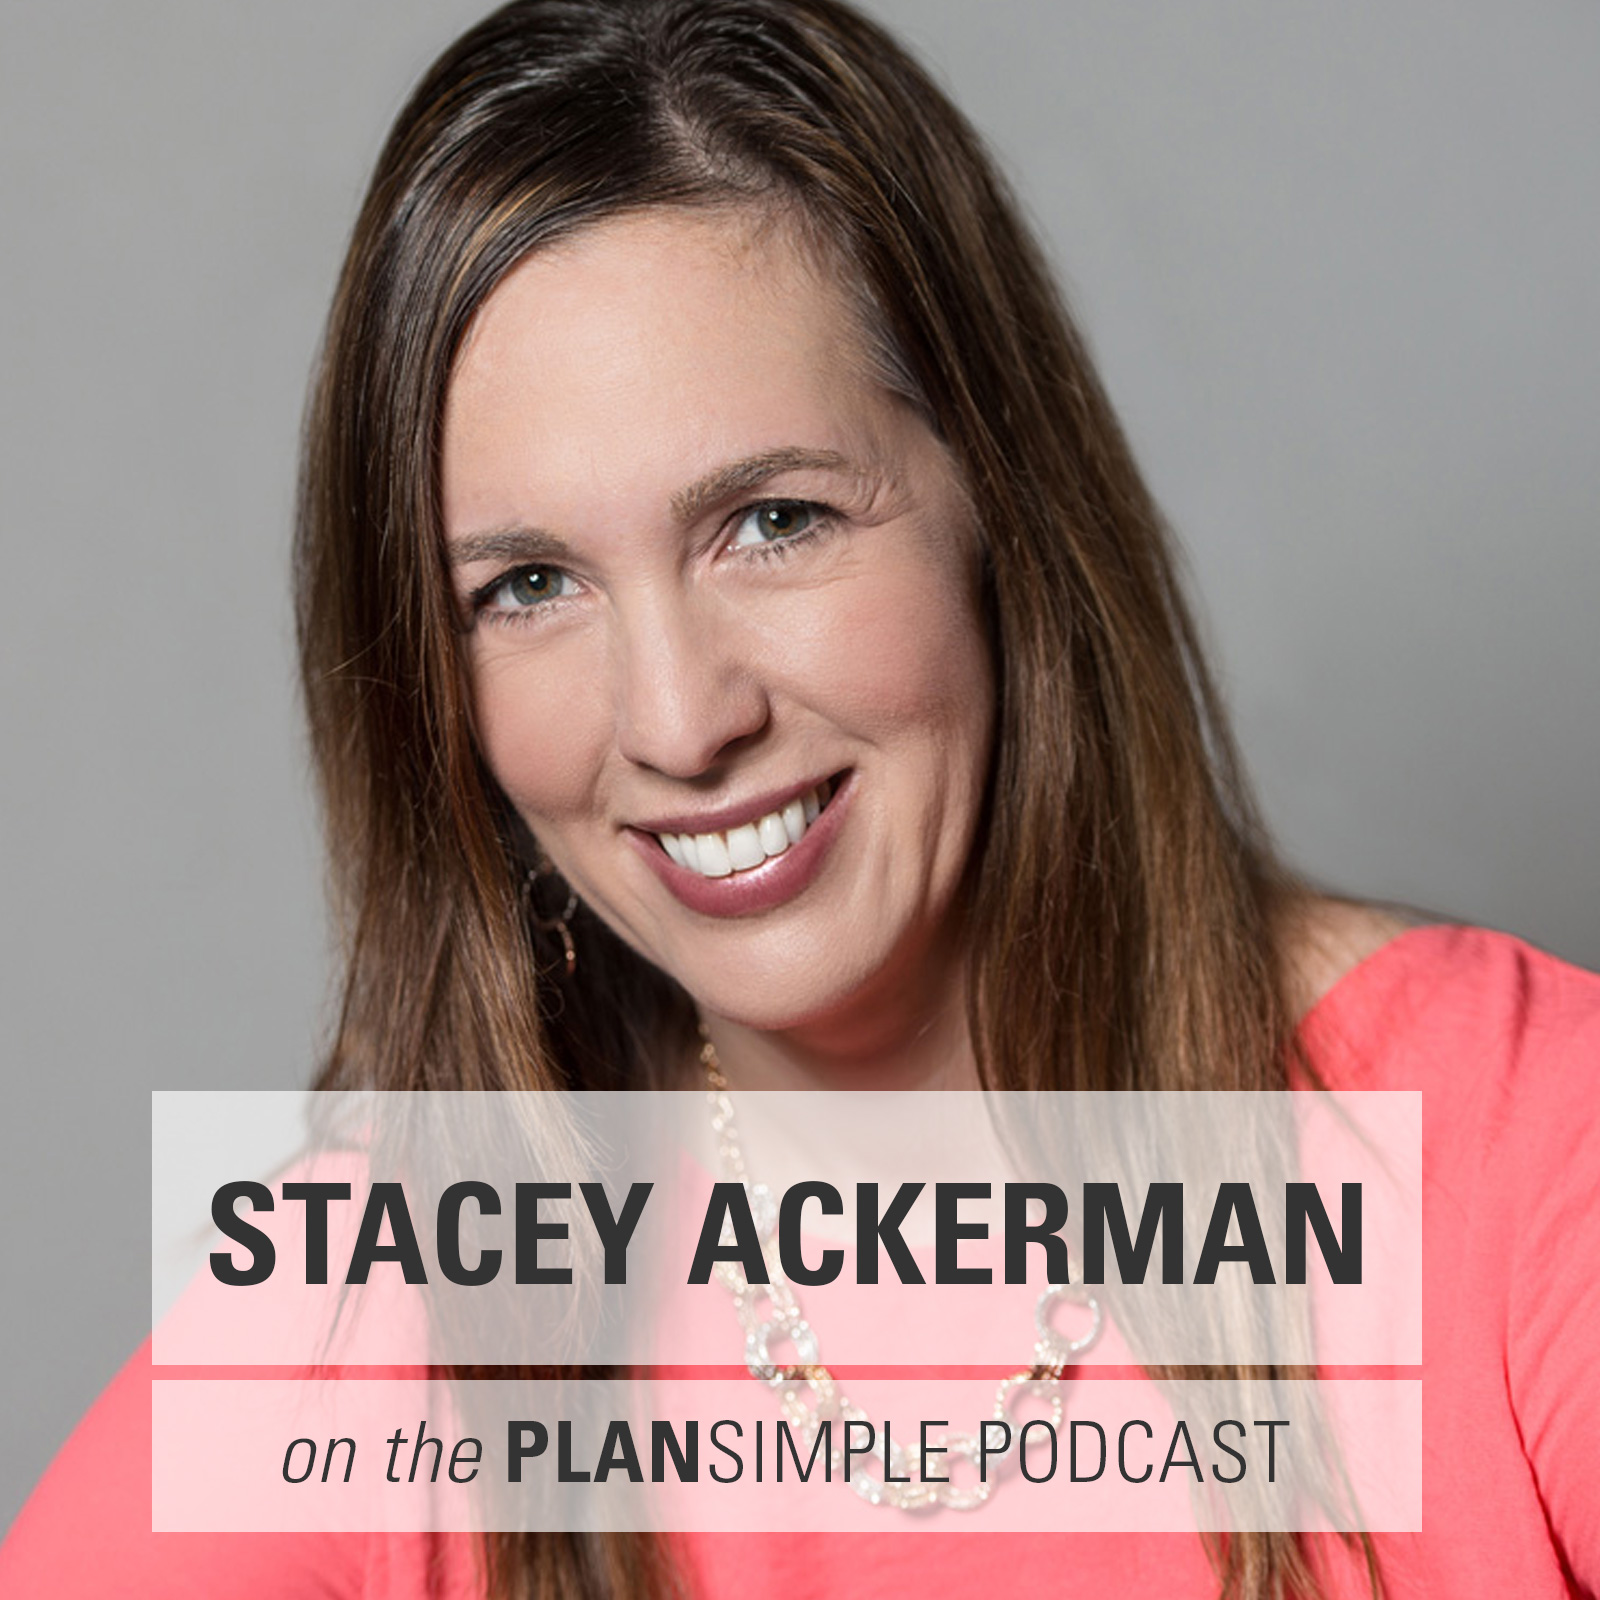 The Three Week Sprint With Stacey Ackerman